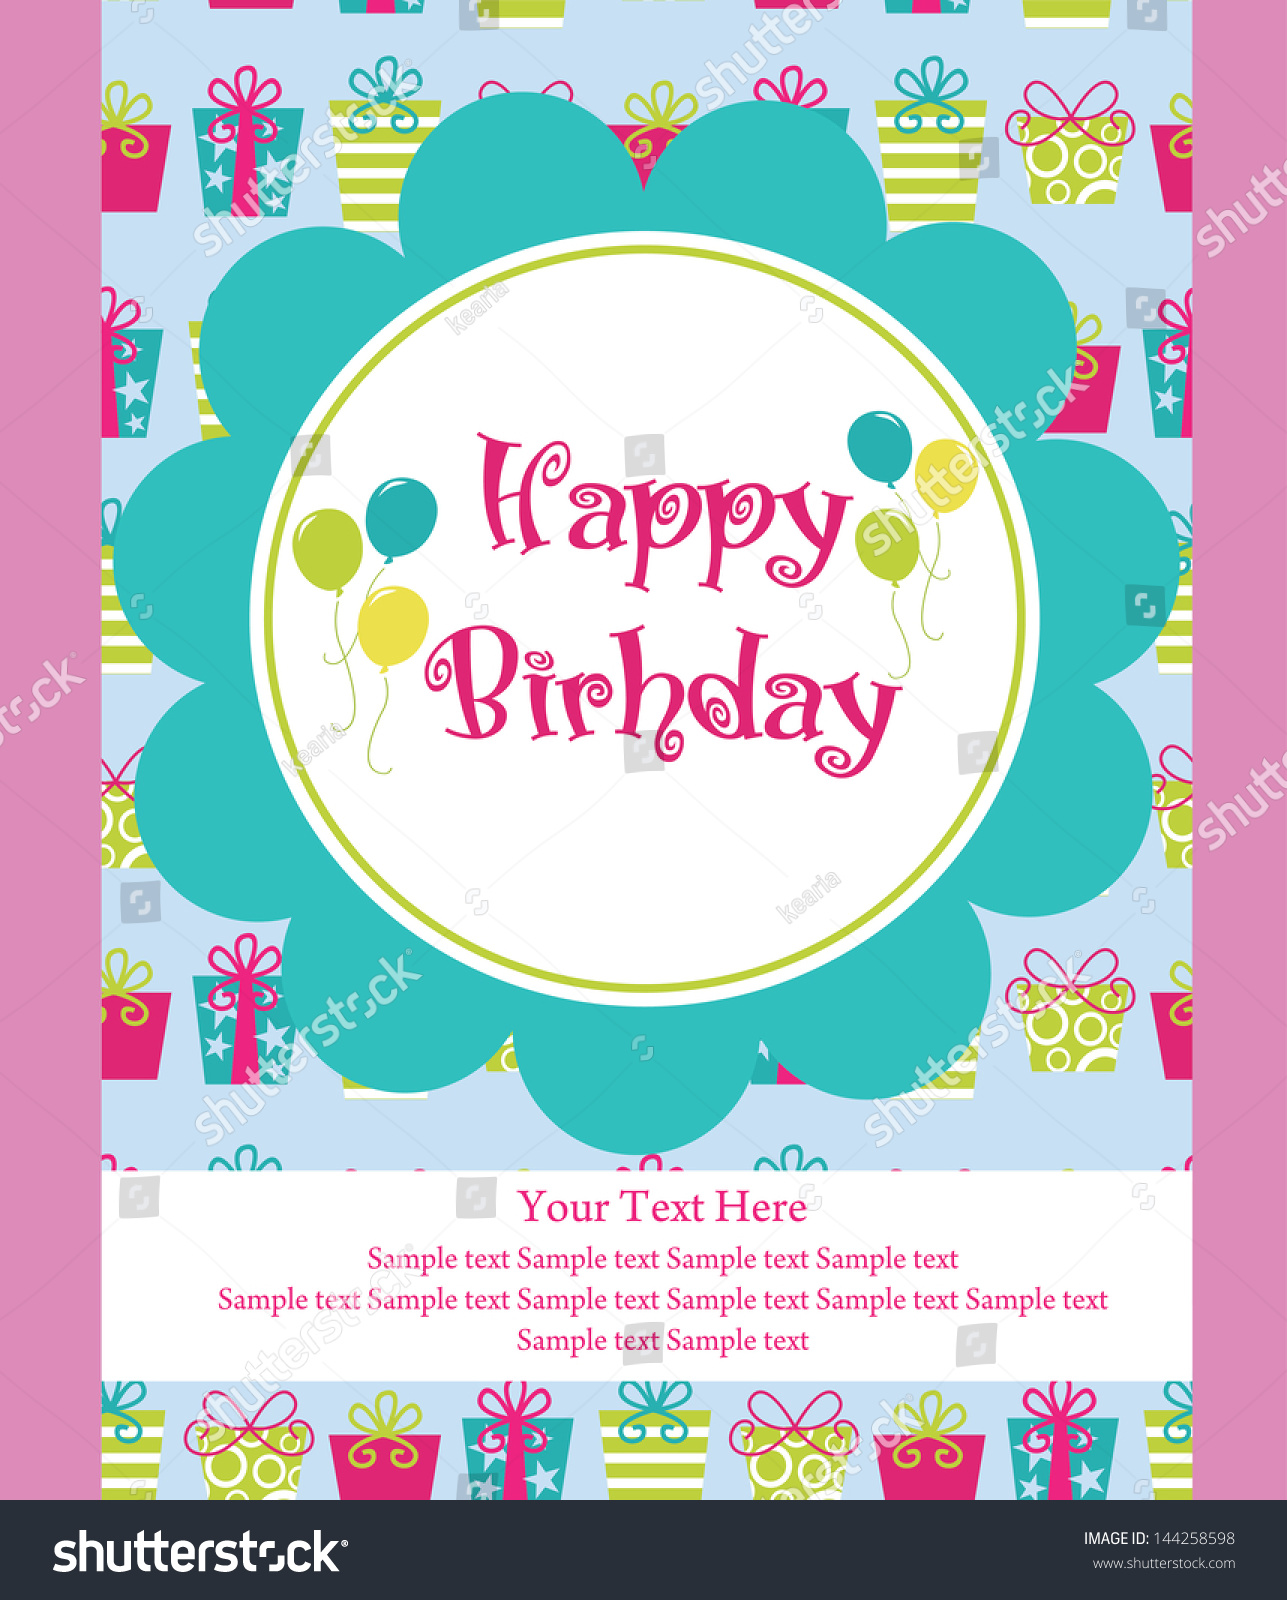 Happy Birthday Greeting Card Vector Illustration Vector – Birthday Greeting Sample